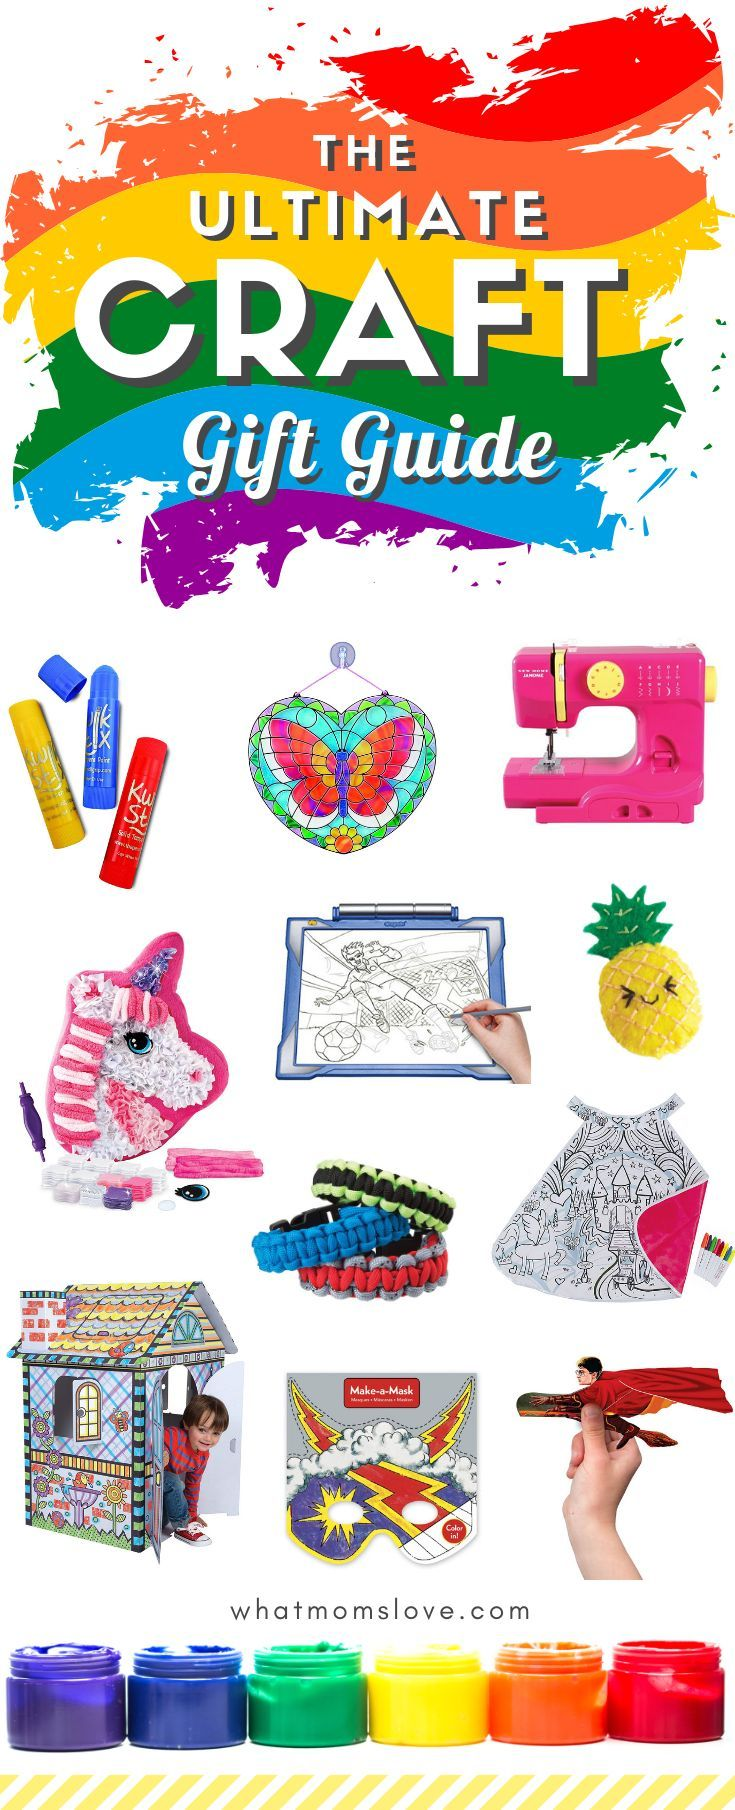 The Best Arts Crafts Supplies Gift Ideas For Kids From Toddlers To Teens Kids Christmas Craft Gifts Gifts For Kids